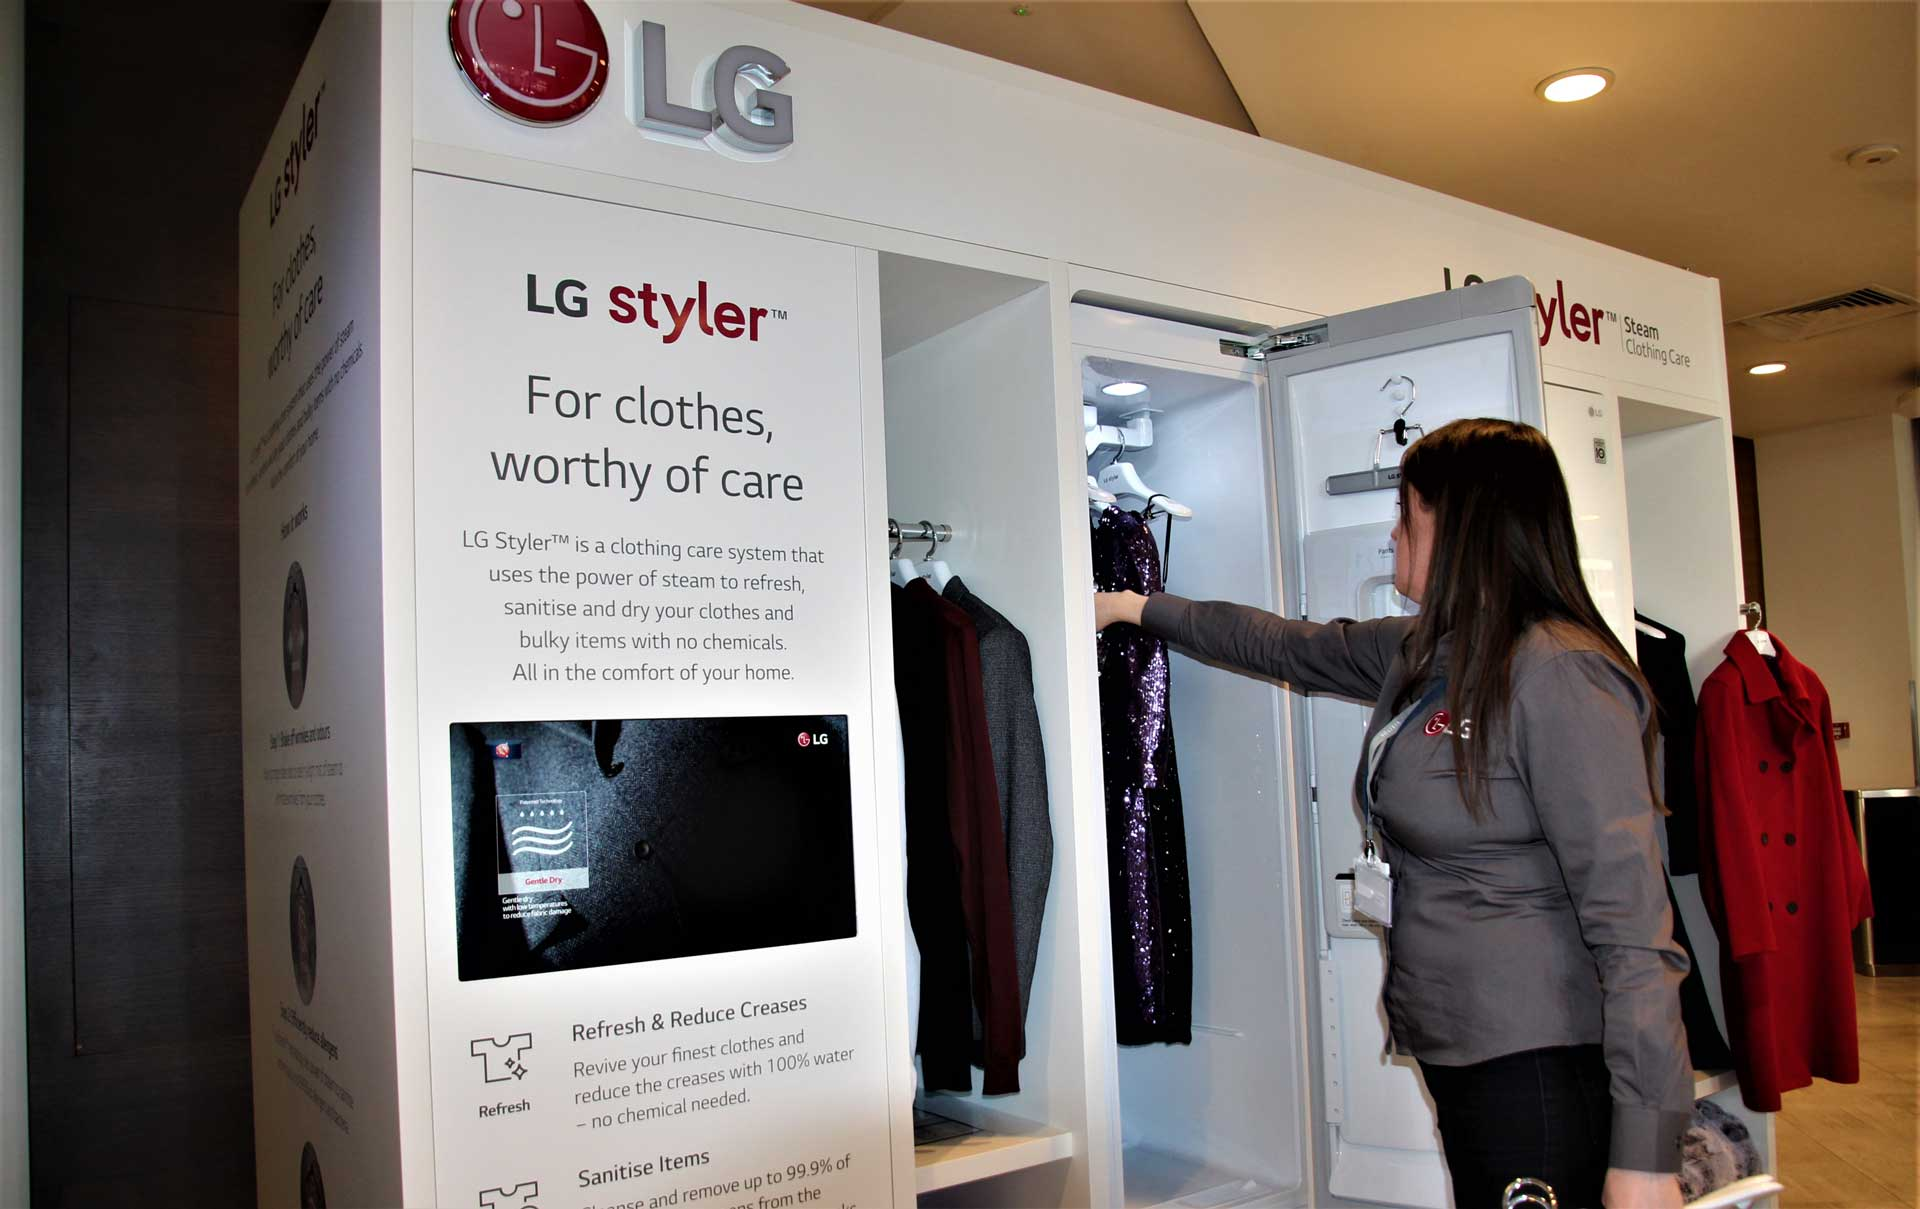 LG Experiential Event Retail Marketing Group